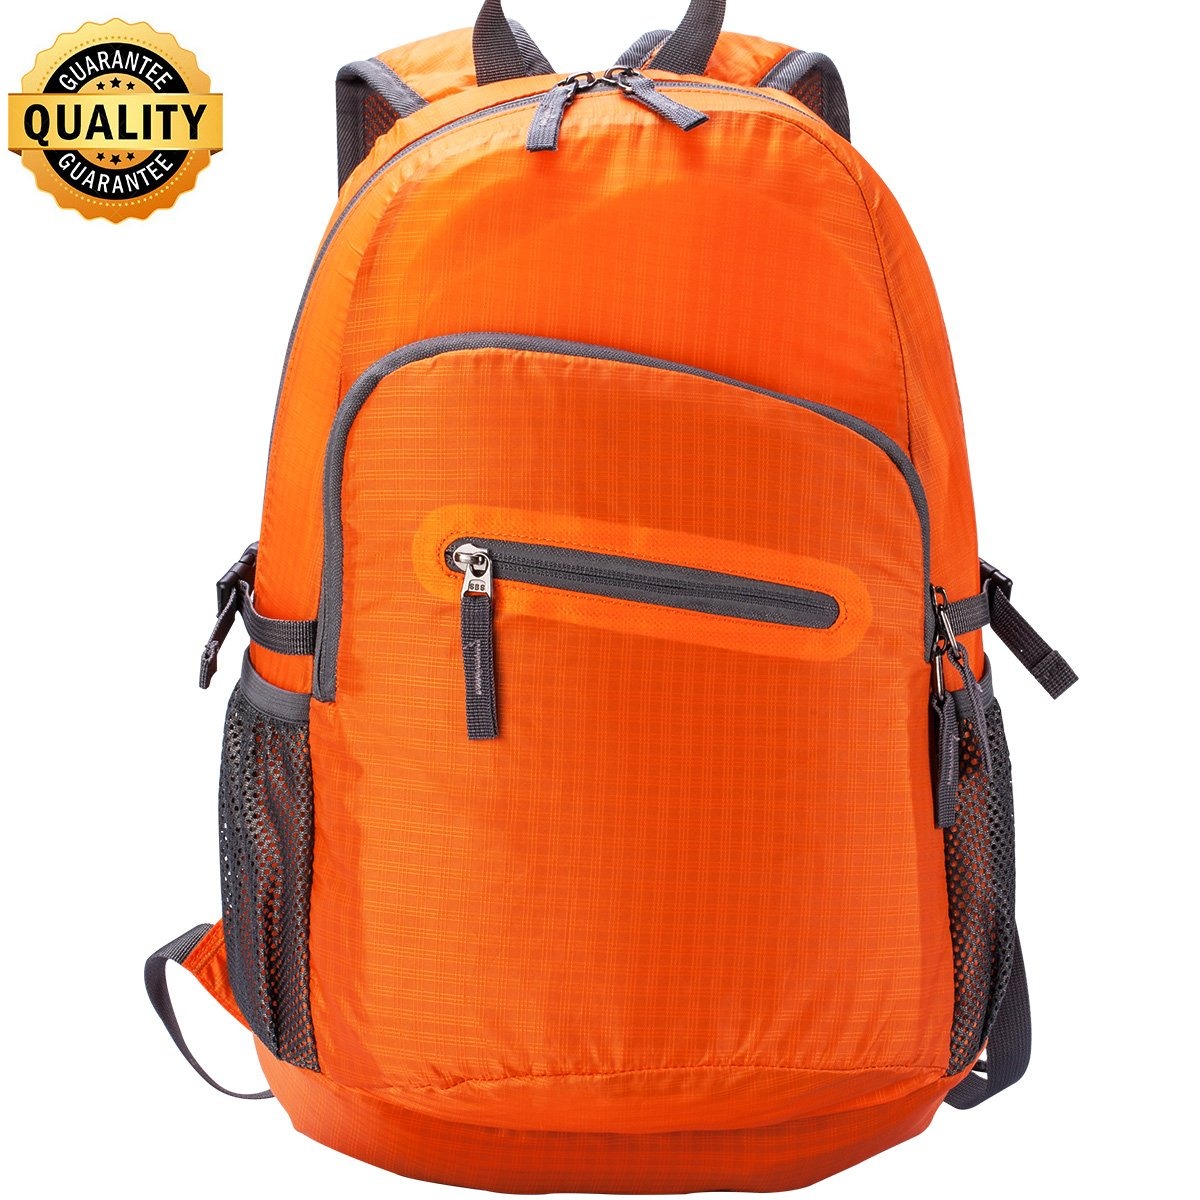 Hiking Backpack Fold UP Back Pack Small Water Resistant Backpack Hiking Bookbags for Travel Colapsable Lightweight Backpack Camping Backpack for Men and Women, Assorted Colors Orange& Black WOT I